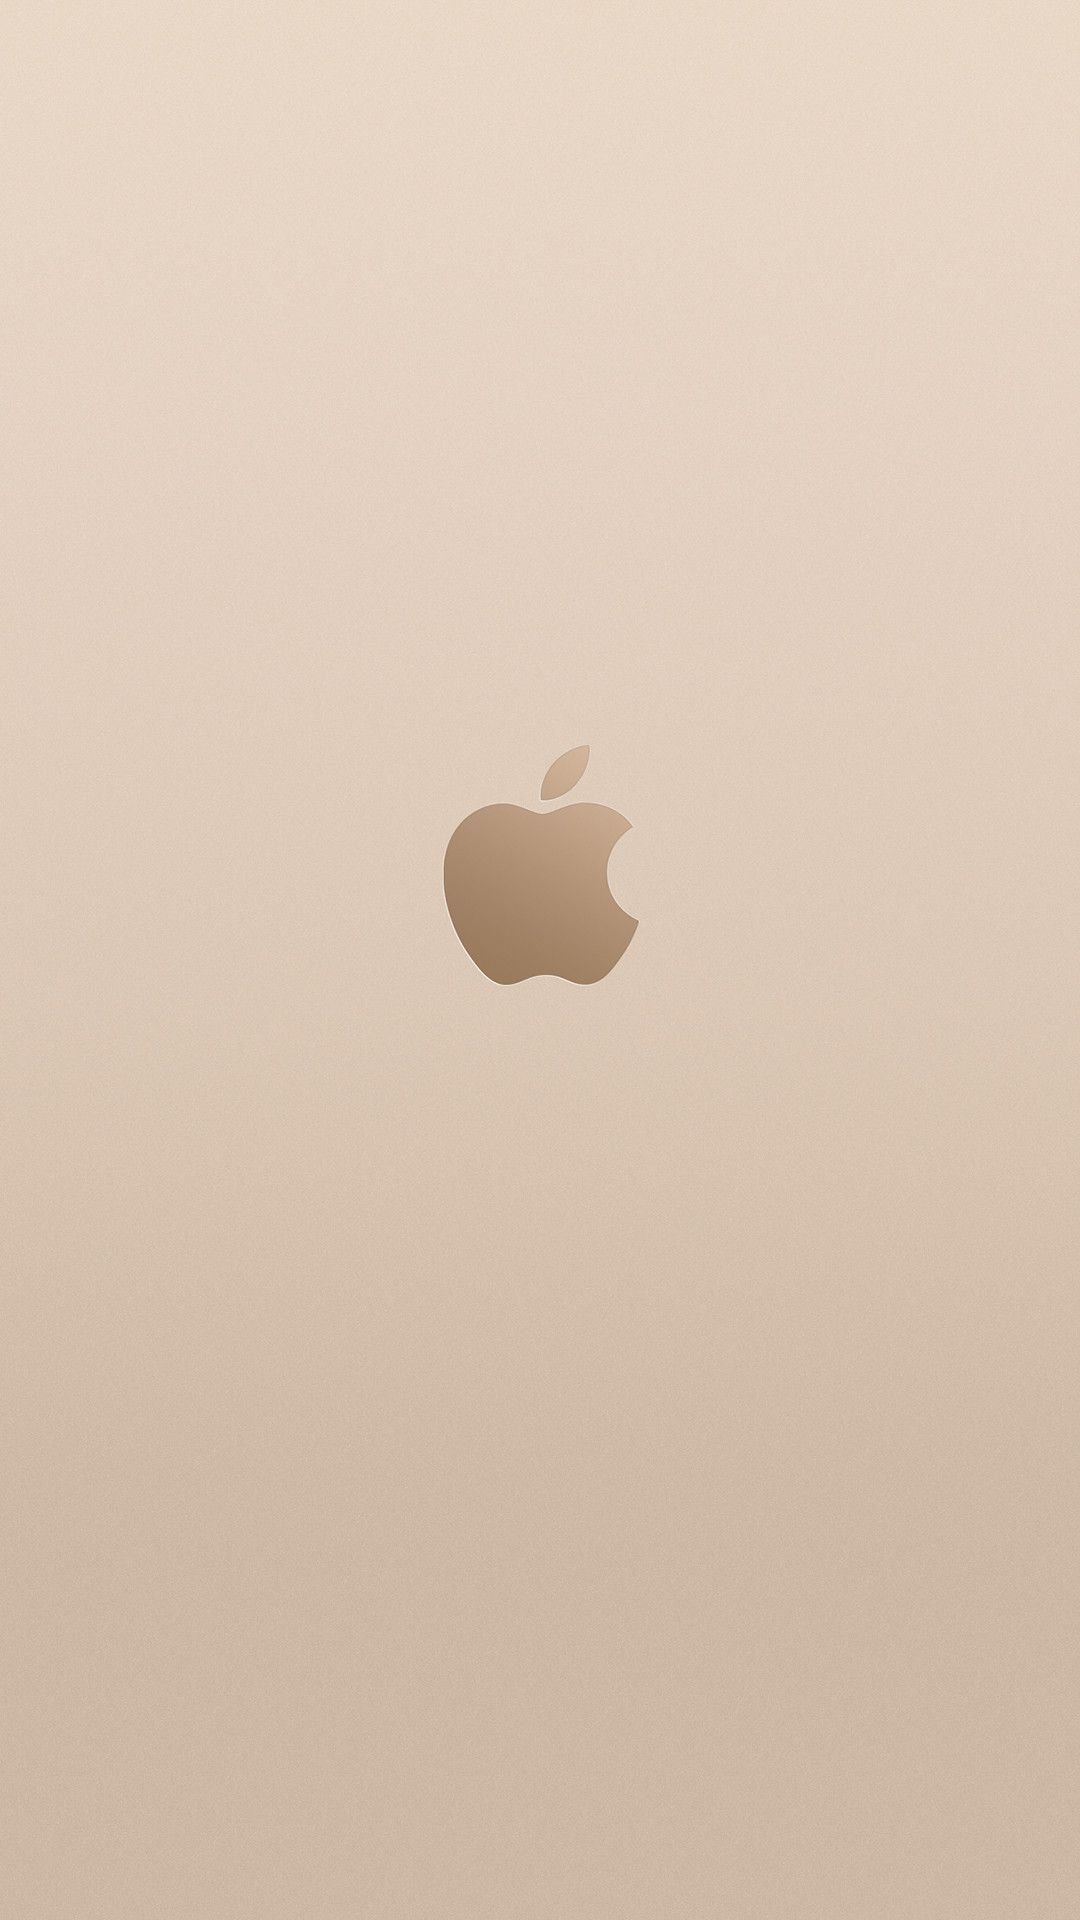 1080x1920 Champagne gold Apple logo | Marvel in 2019 | Iphone 6 plus ...